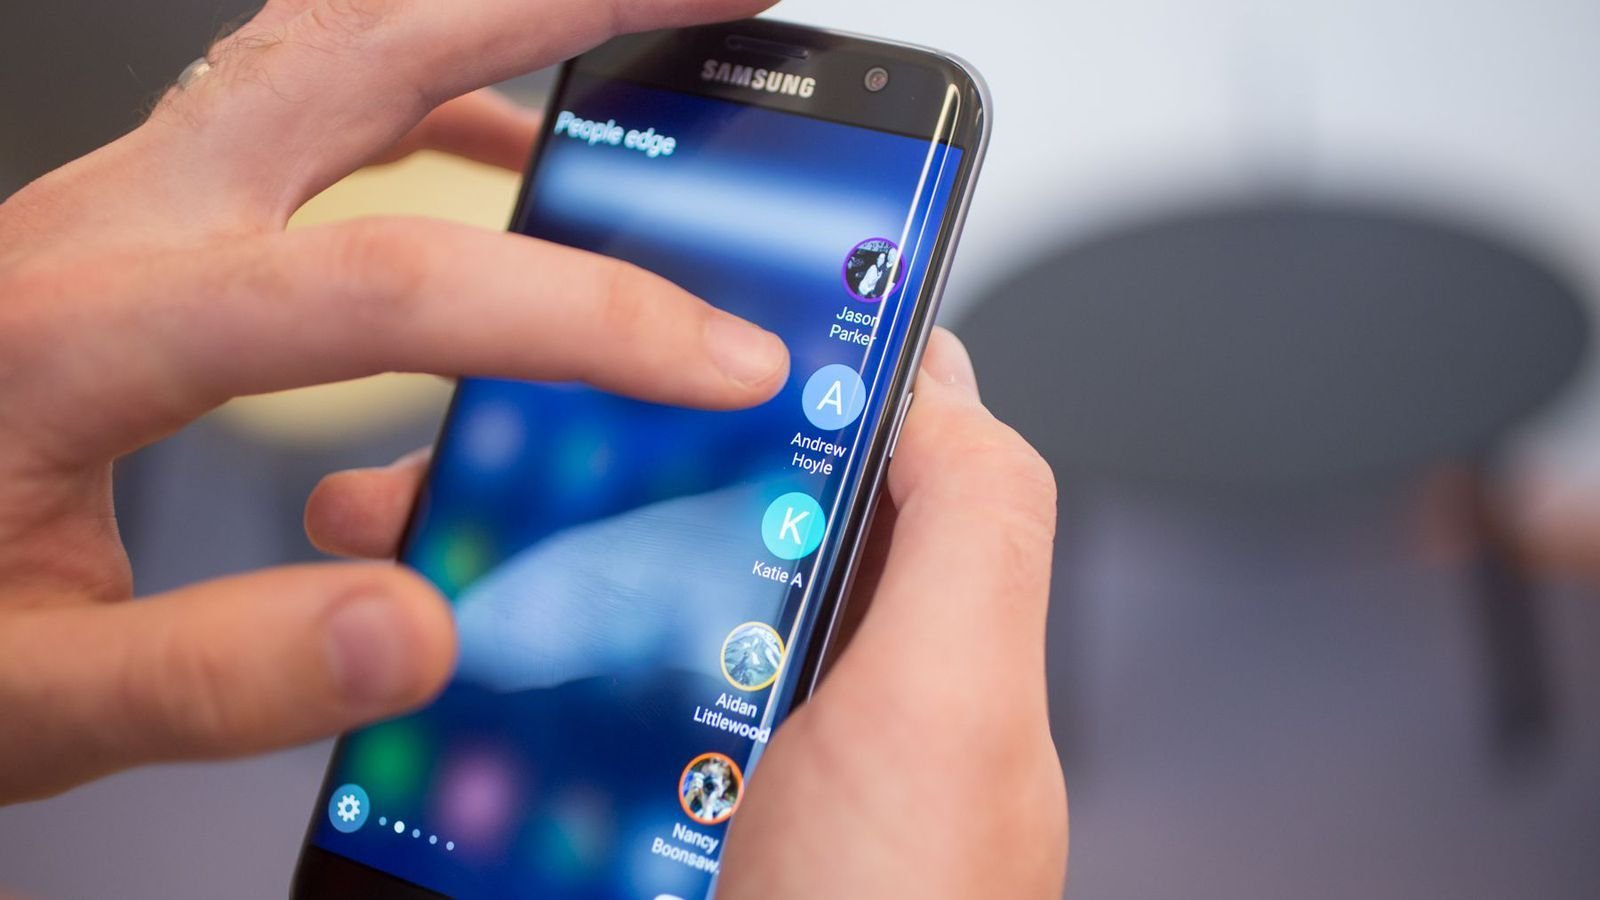 Install Samsung Galaxy Edge Screen Feature on Any Android Phone 1